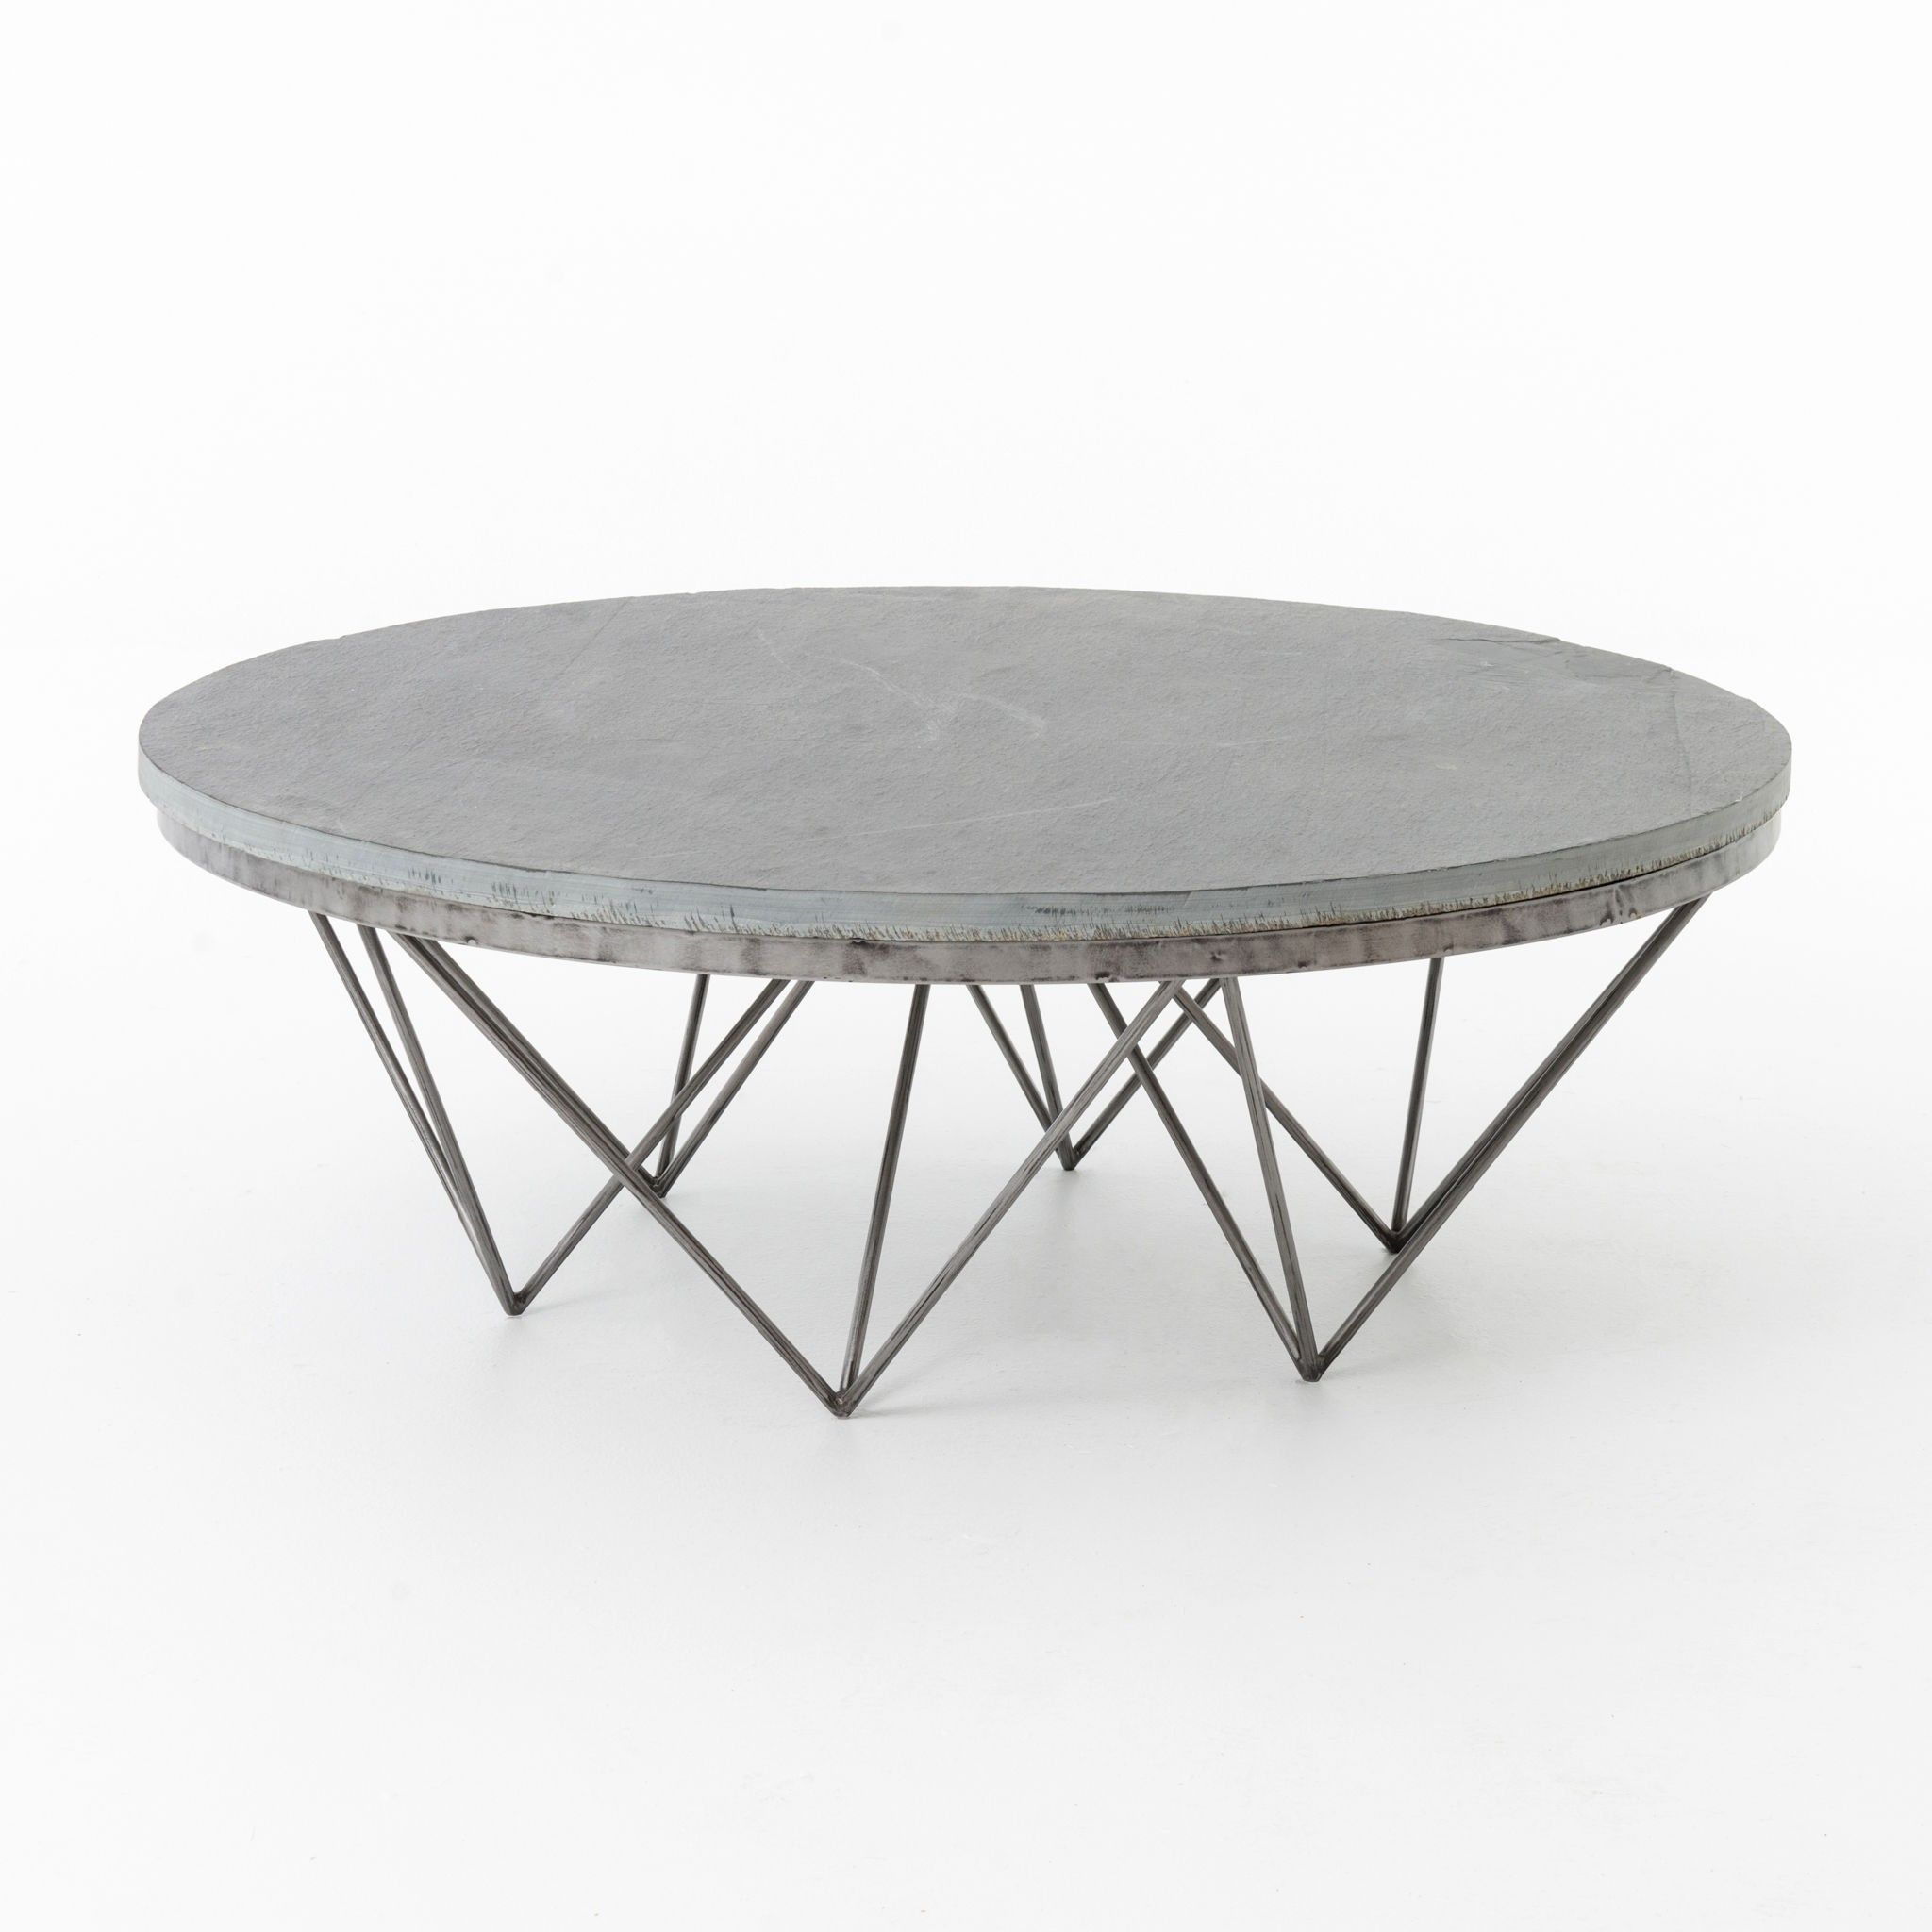 Modern Round Grey Slate Coffee Table With Geometric Metal Base Slate Is  Natural Stone Product Colors And Textures Will Vary